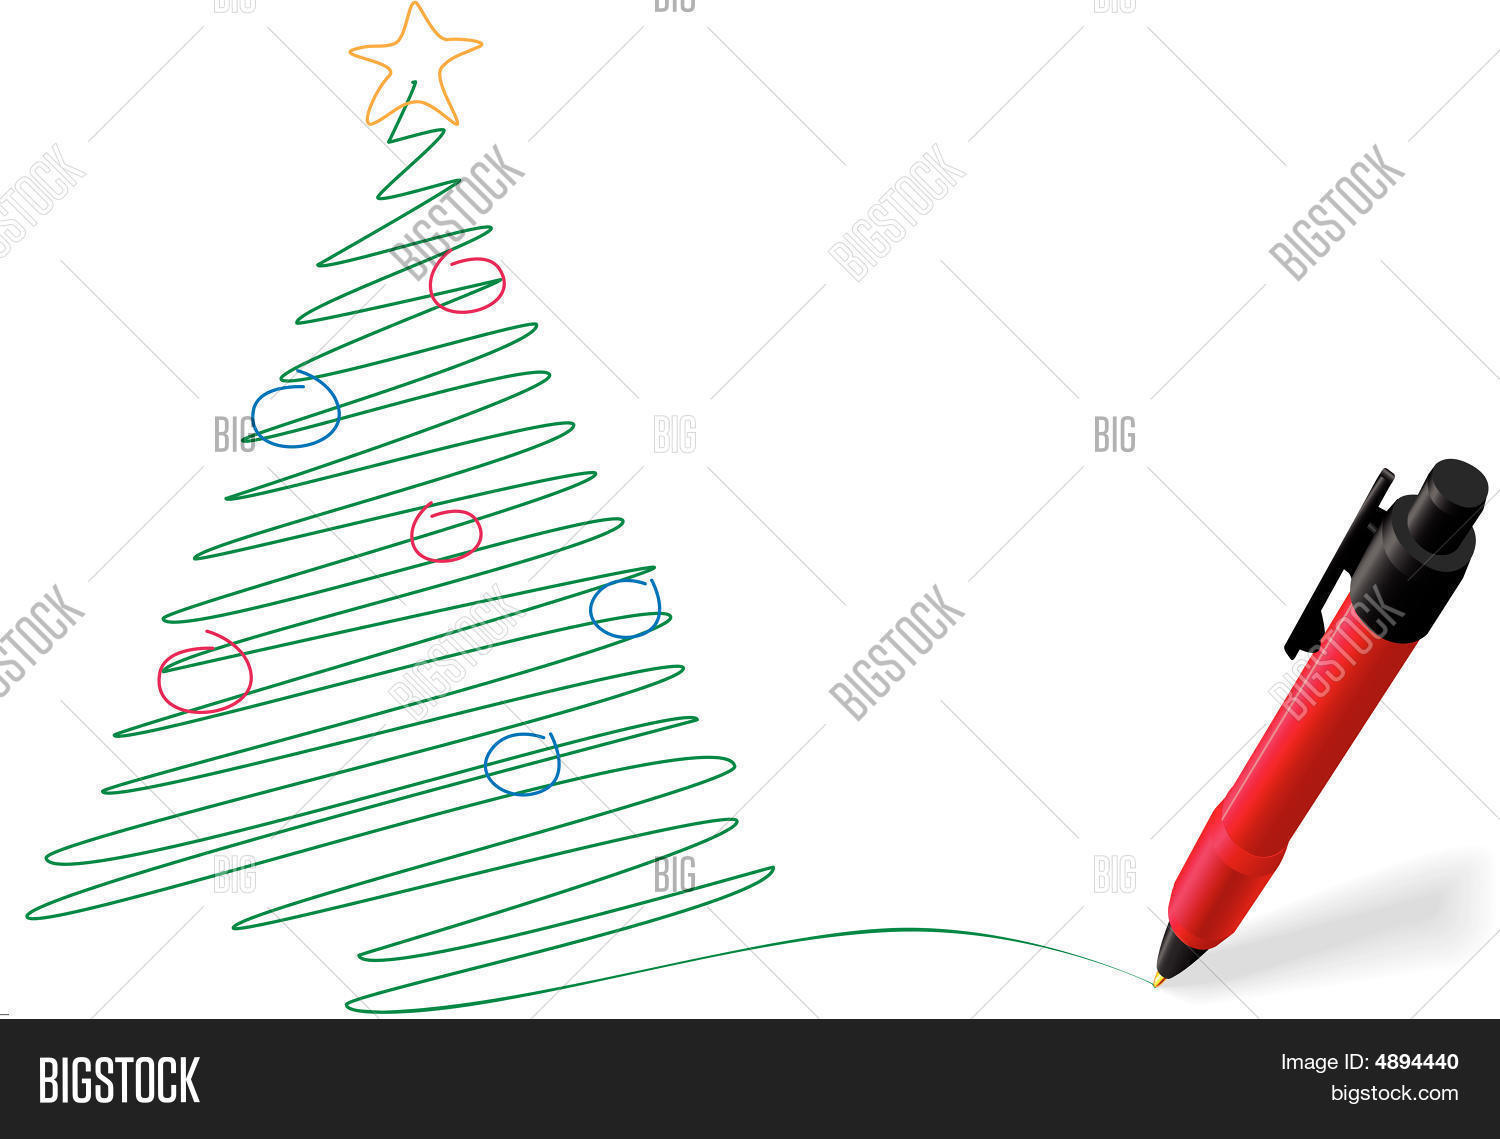 Pen Ink Drawing Vector Photo Free Trial Bigstock